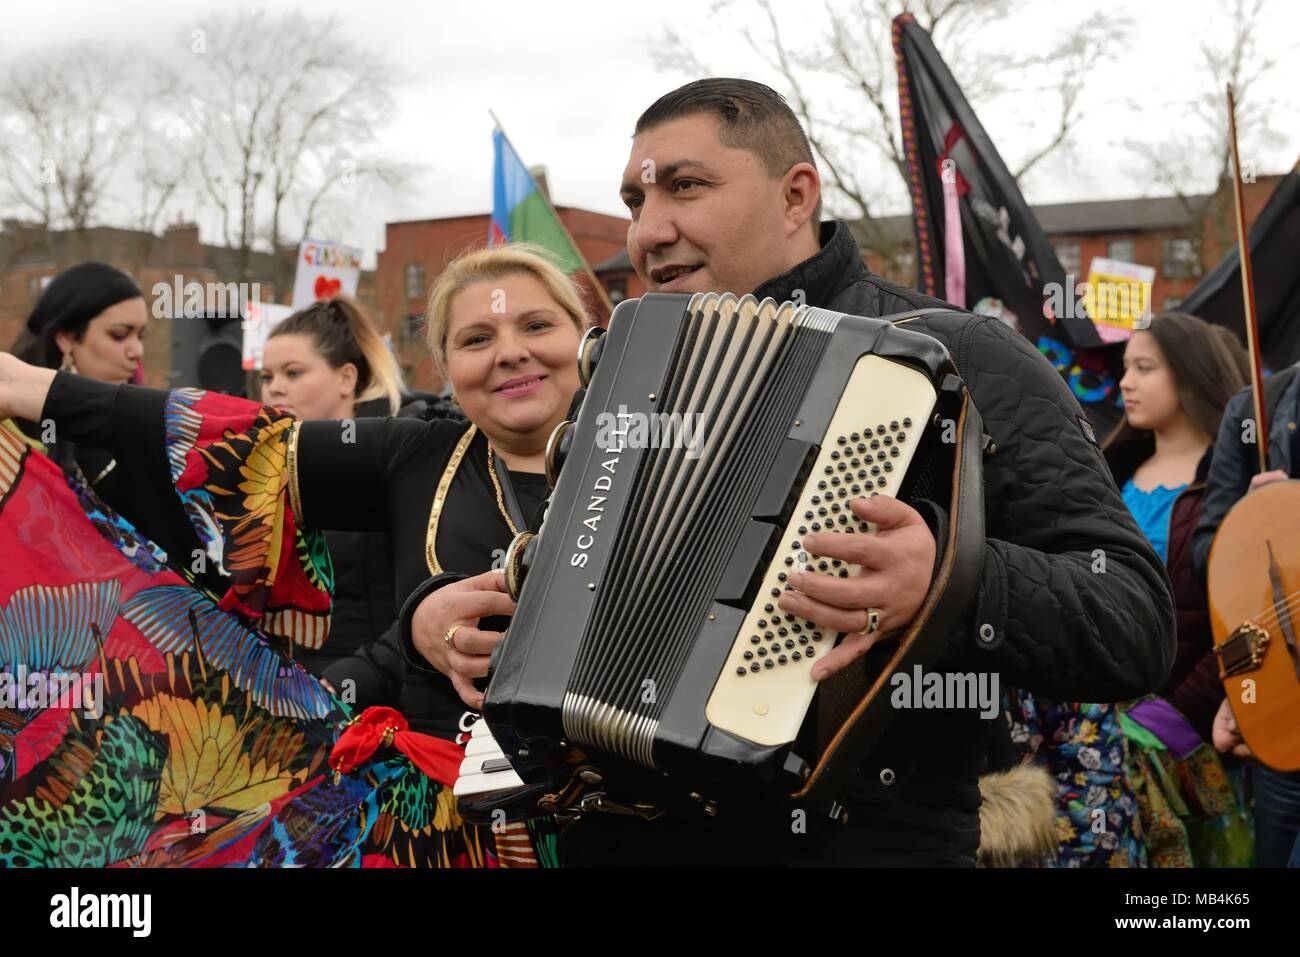 Govanhill, Glasgow, Scotland, UK. 7th April, 2018.  The 5th annual International Roma day was celebrated in Govanhill today with a parade, traditional dress, food and music. - Stock Image